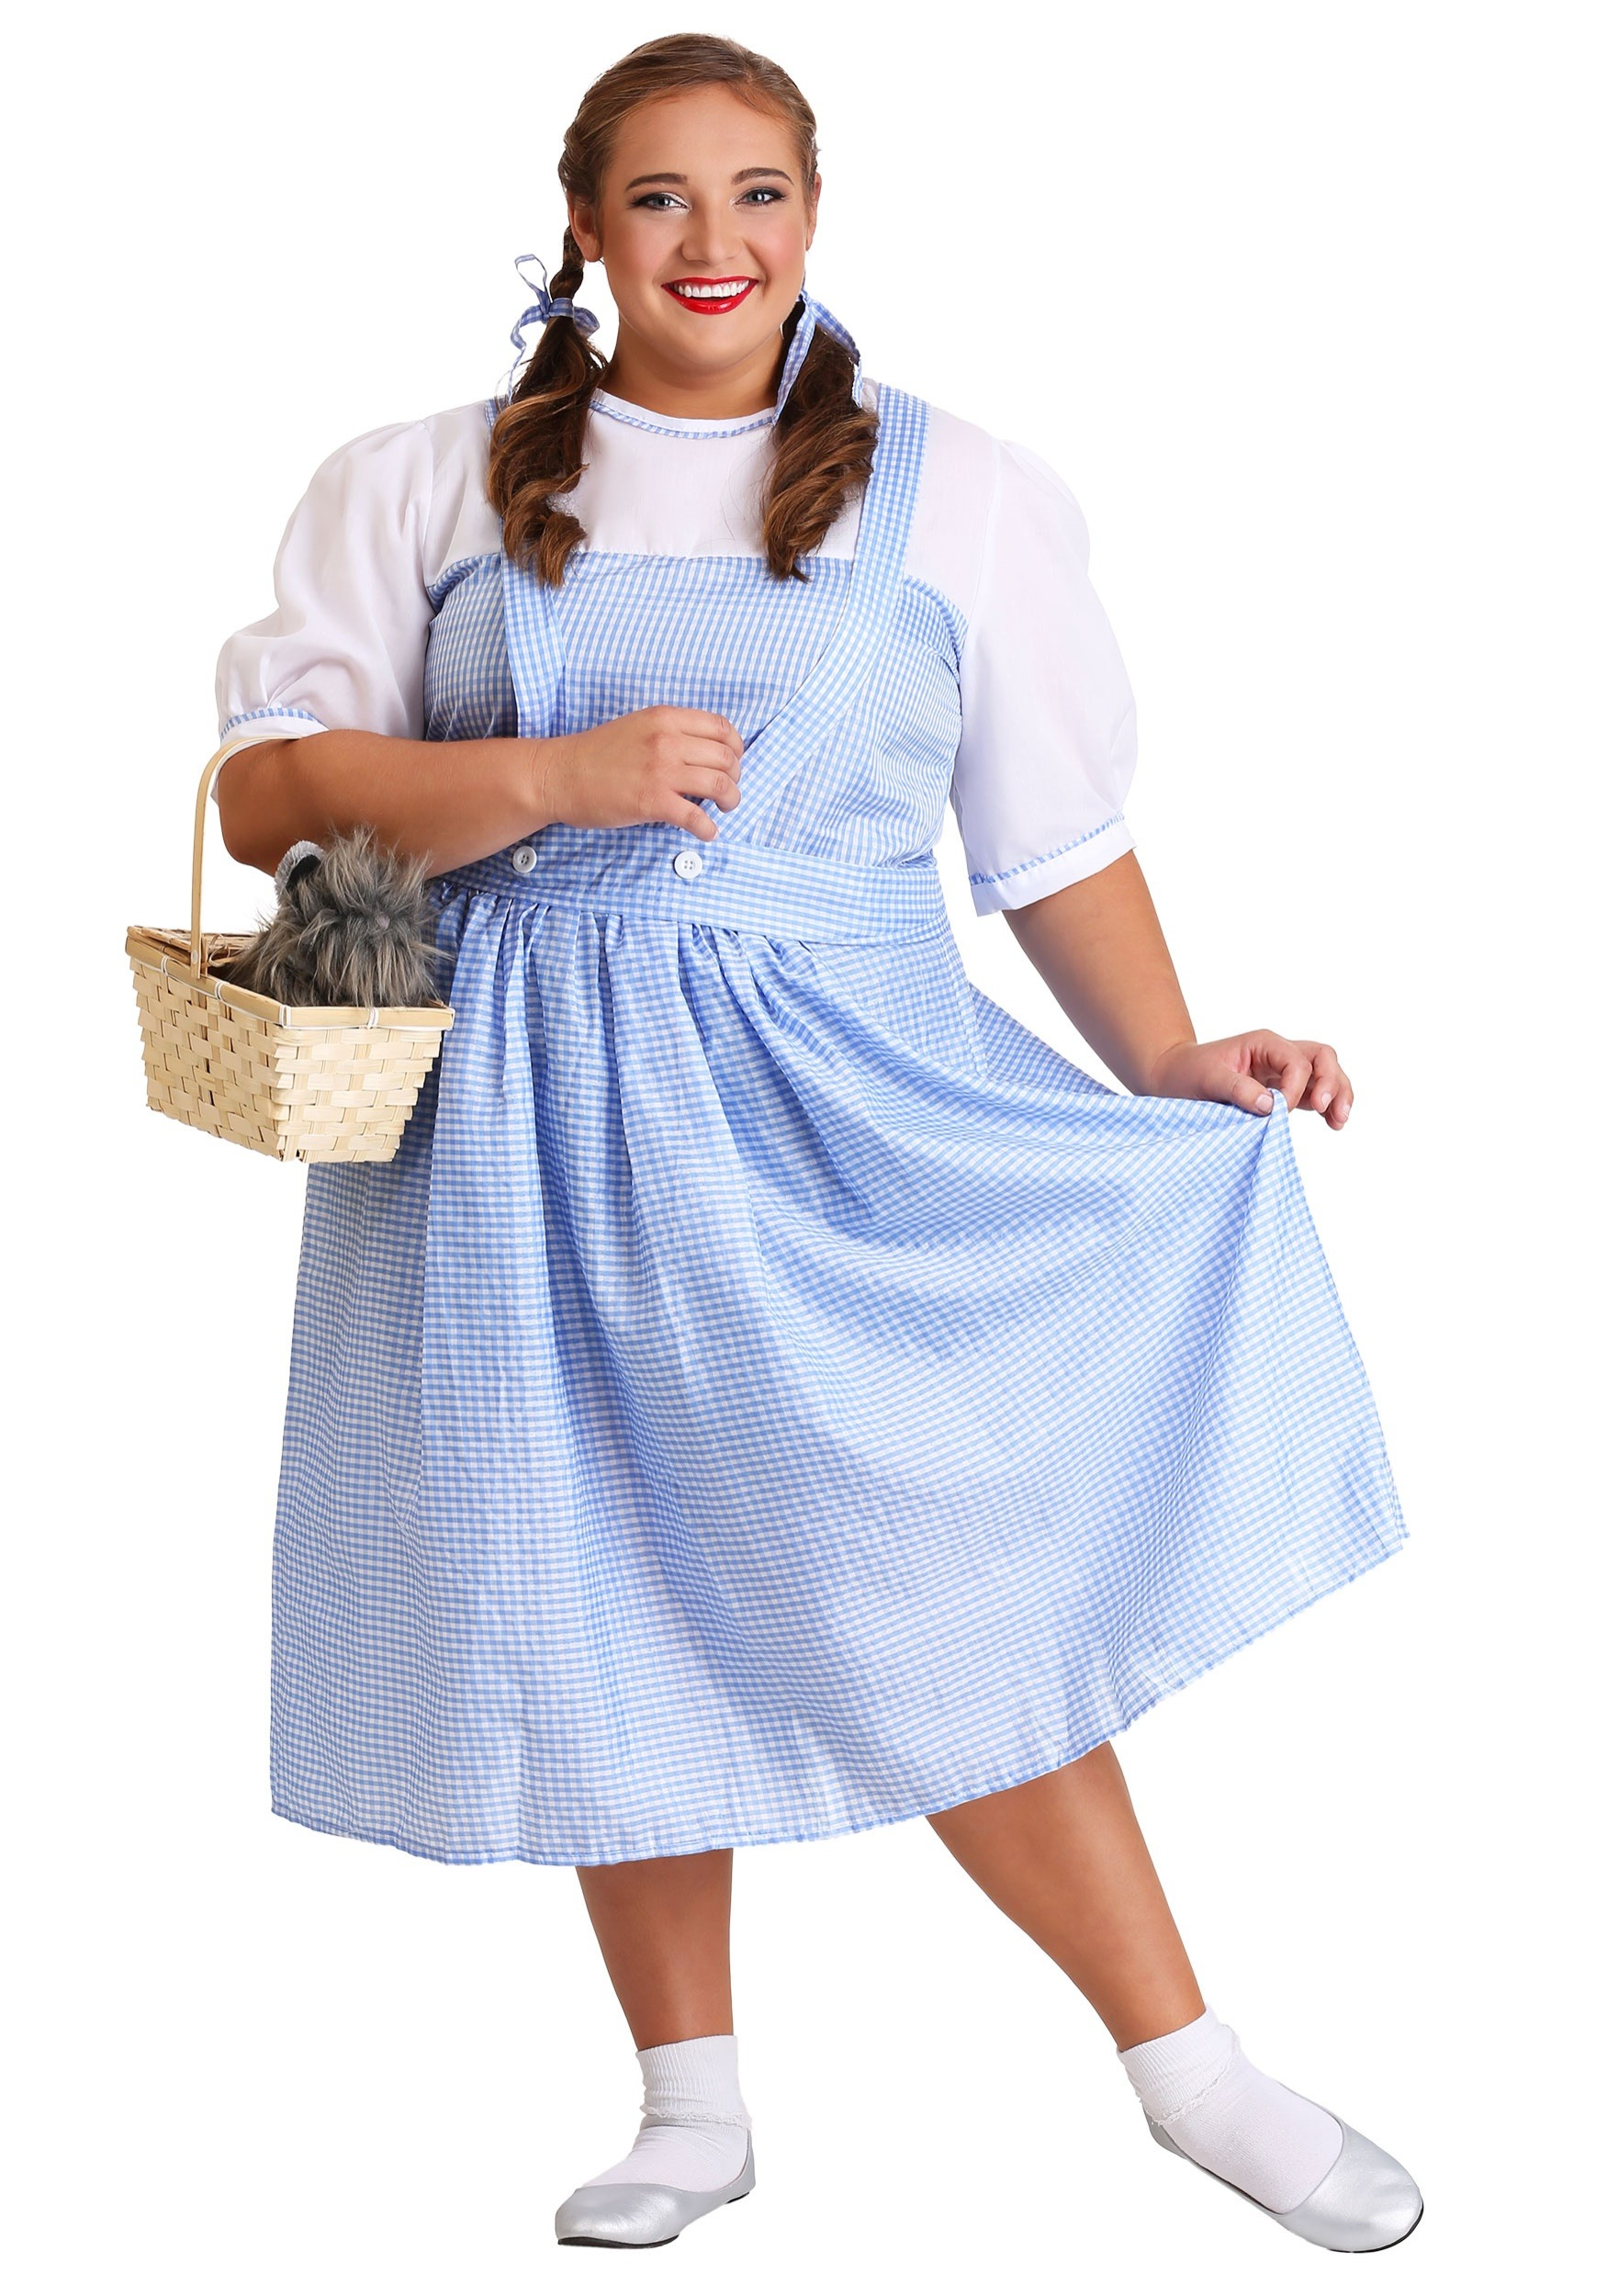 Wonderful Wizard of Oz Costumes - HalloweenCostumes.com